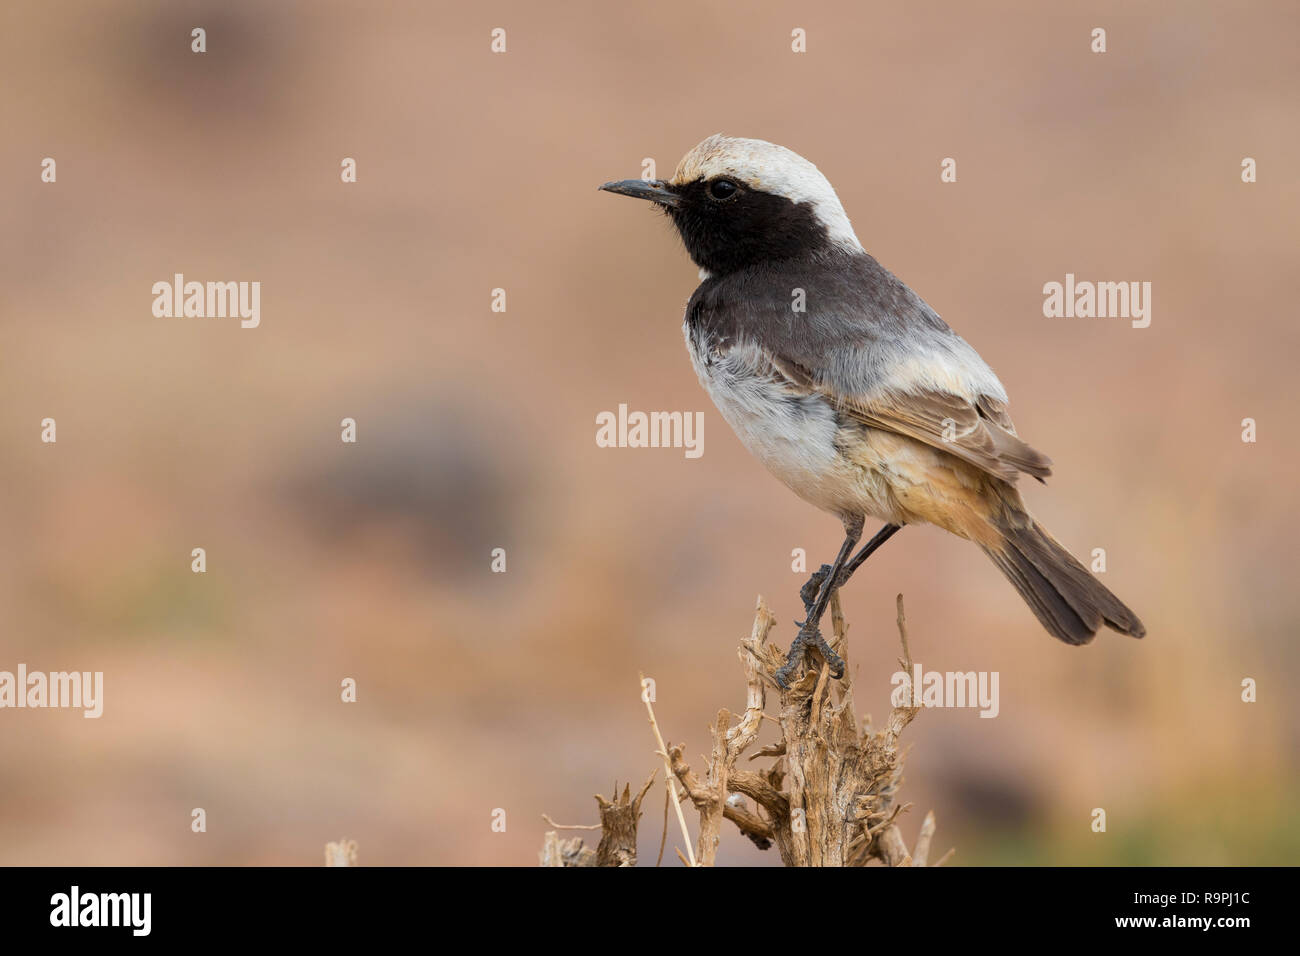 Red-rumped Wheatear (Oenanthe moesta), adult male standing on a bush in Morocco - Stock Image